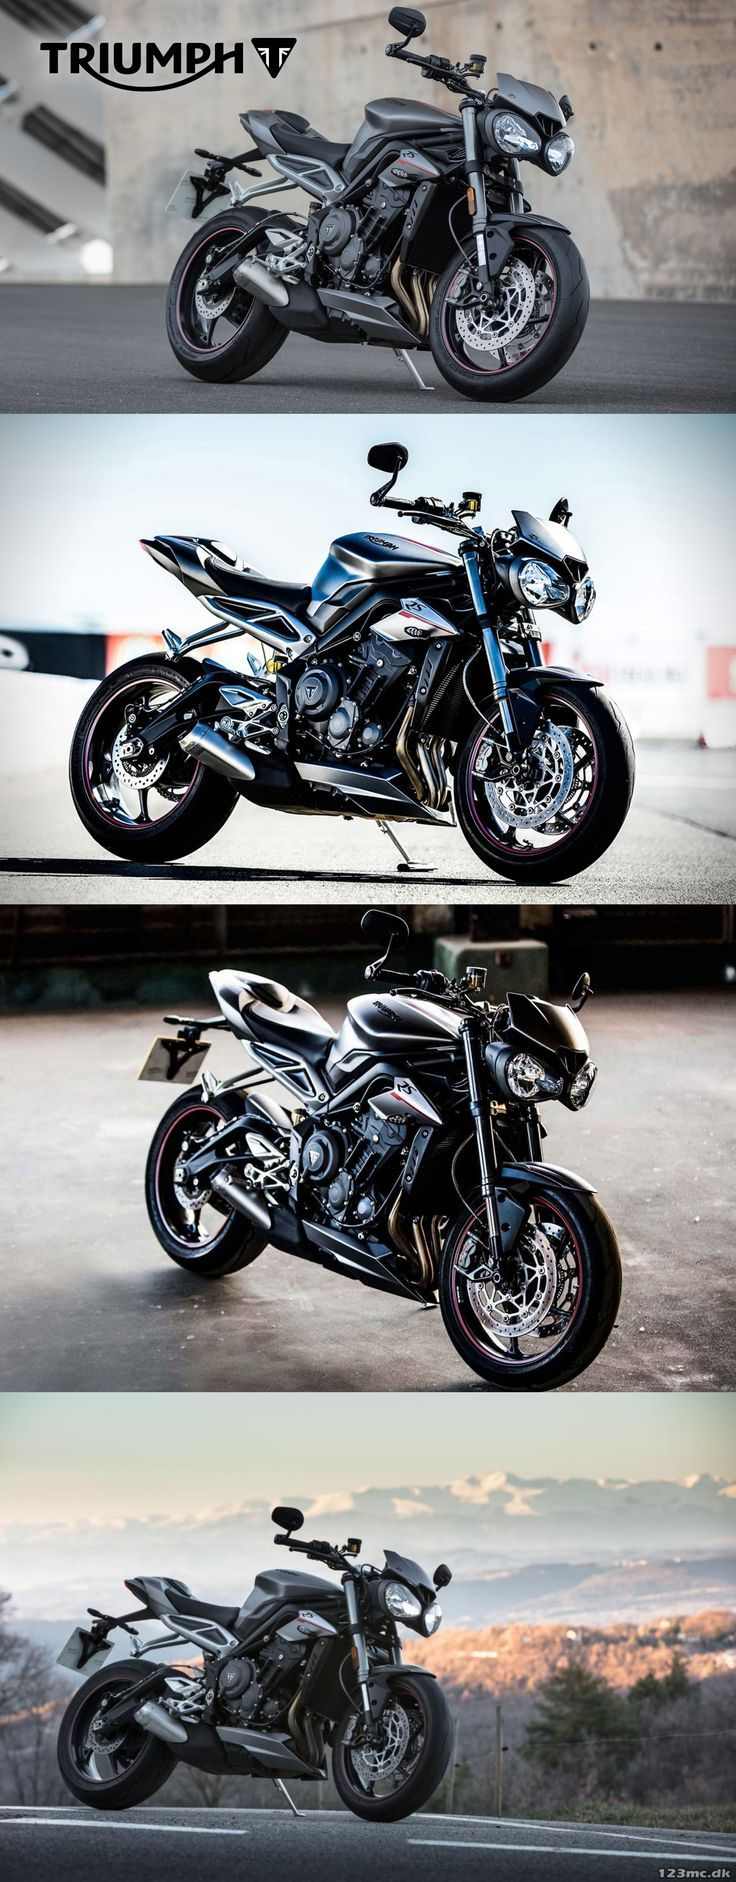 New SPEED TRIPLE 1200 RS for sale in Cardiff, Wales | Bevan Triumph